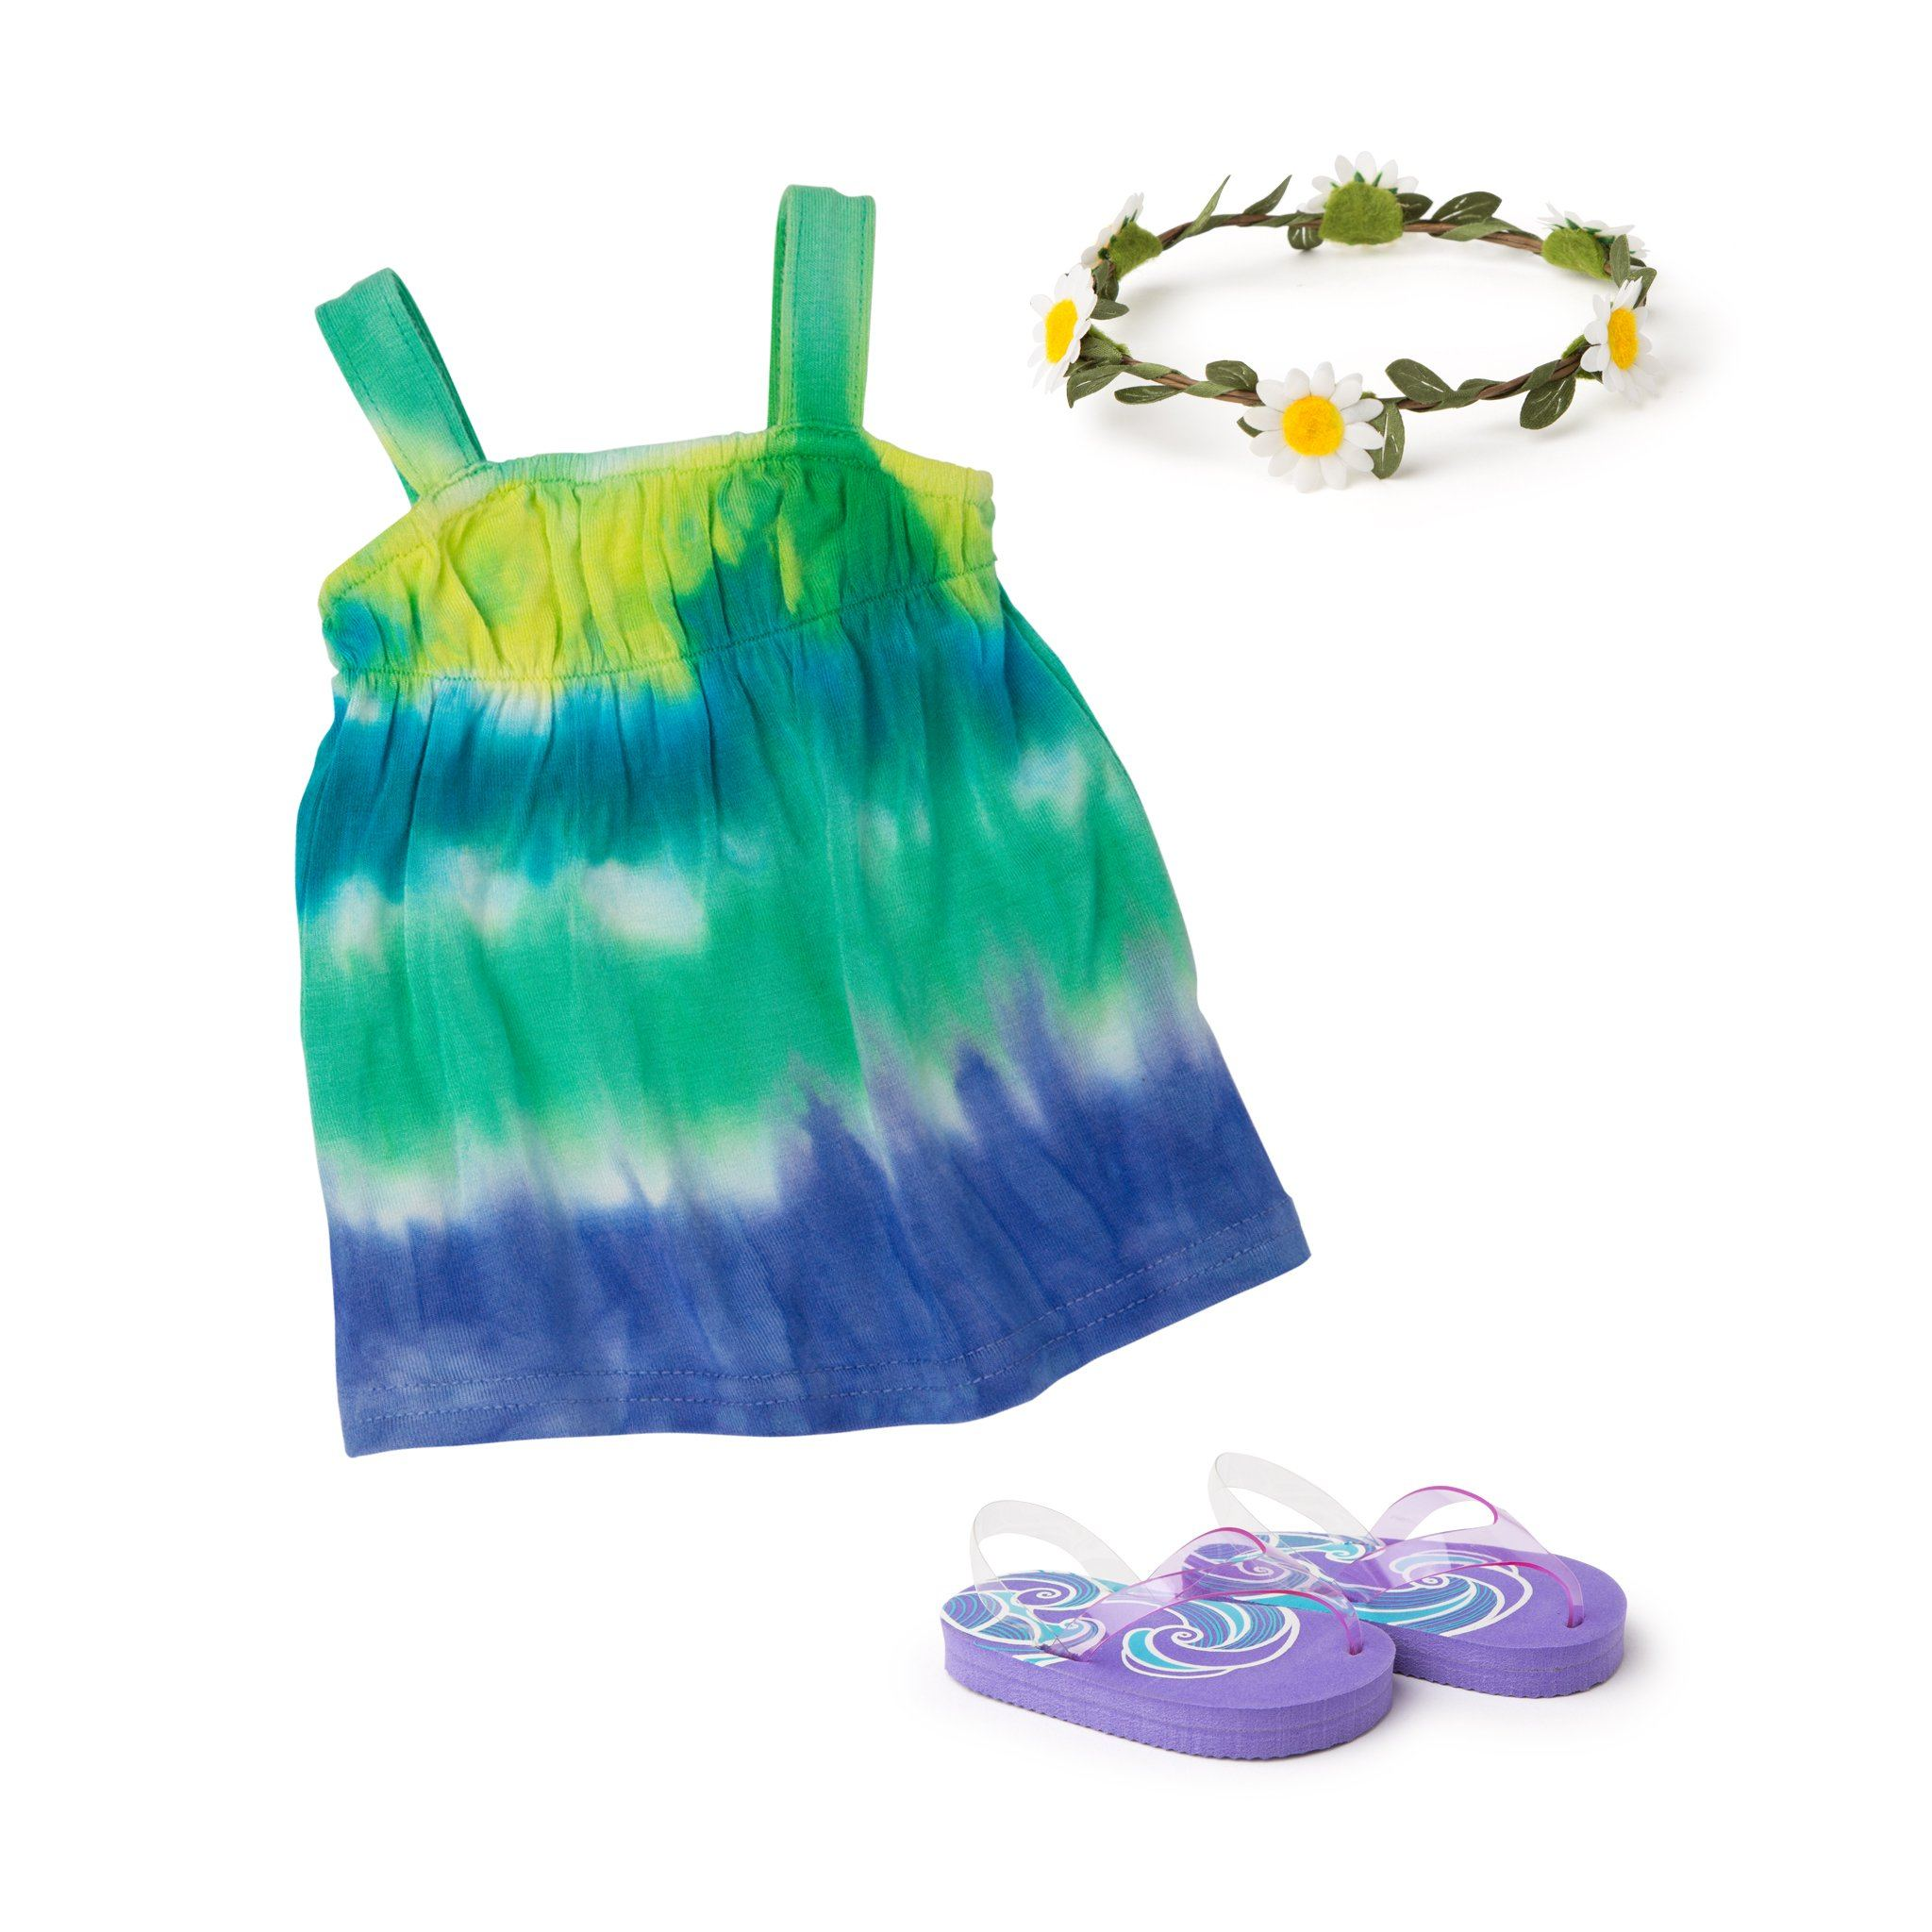 Tie-dyed summer dress with purple flip-flops and daisy-chain headband fits all 18 inch dolls.